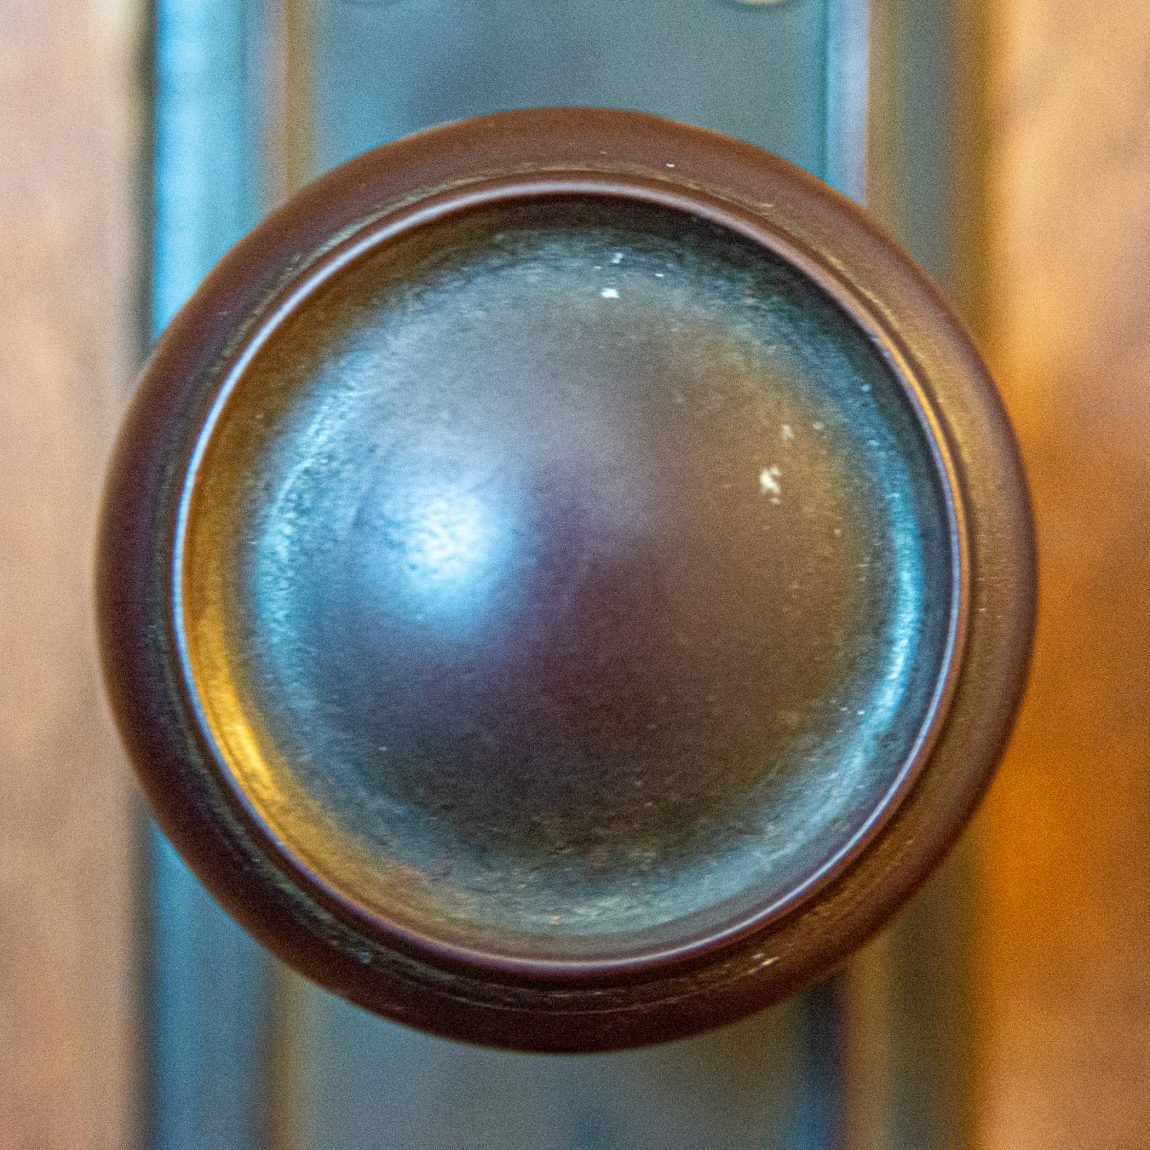 Door knobs of my house: basement, inside